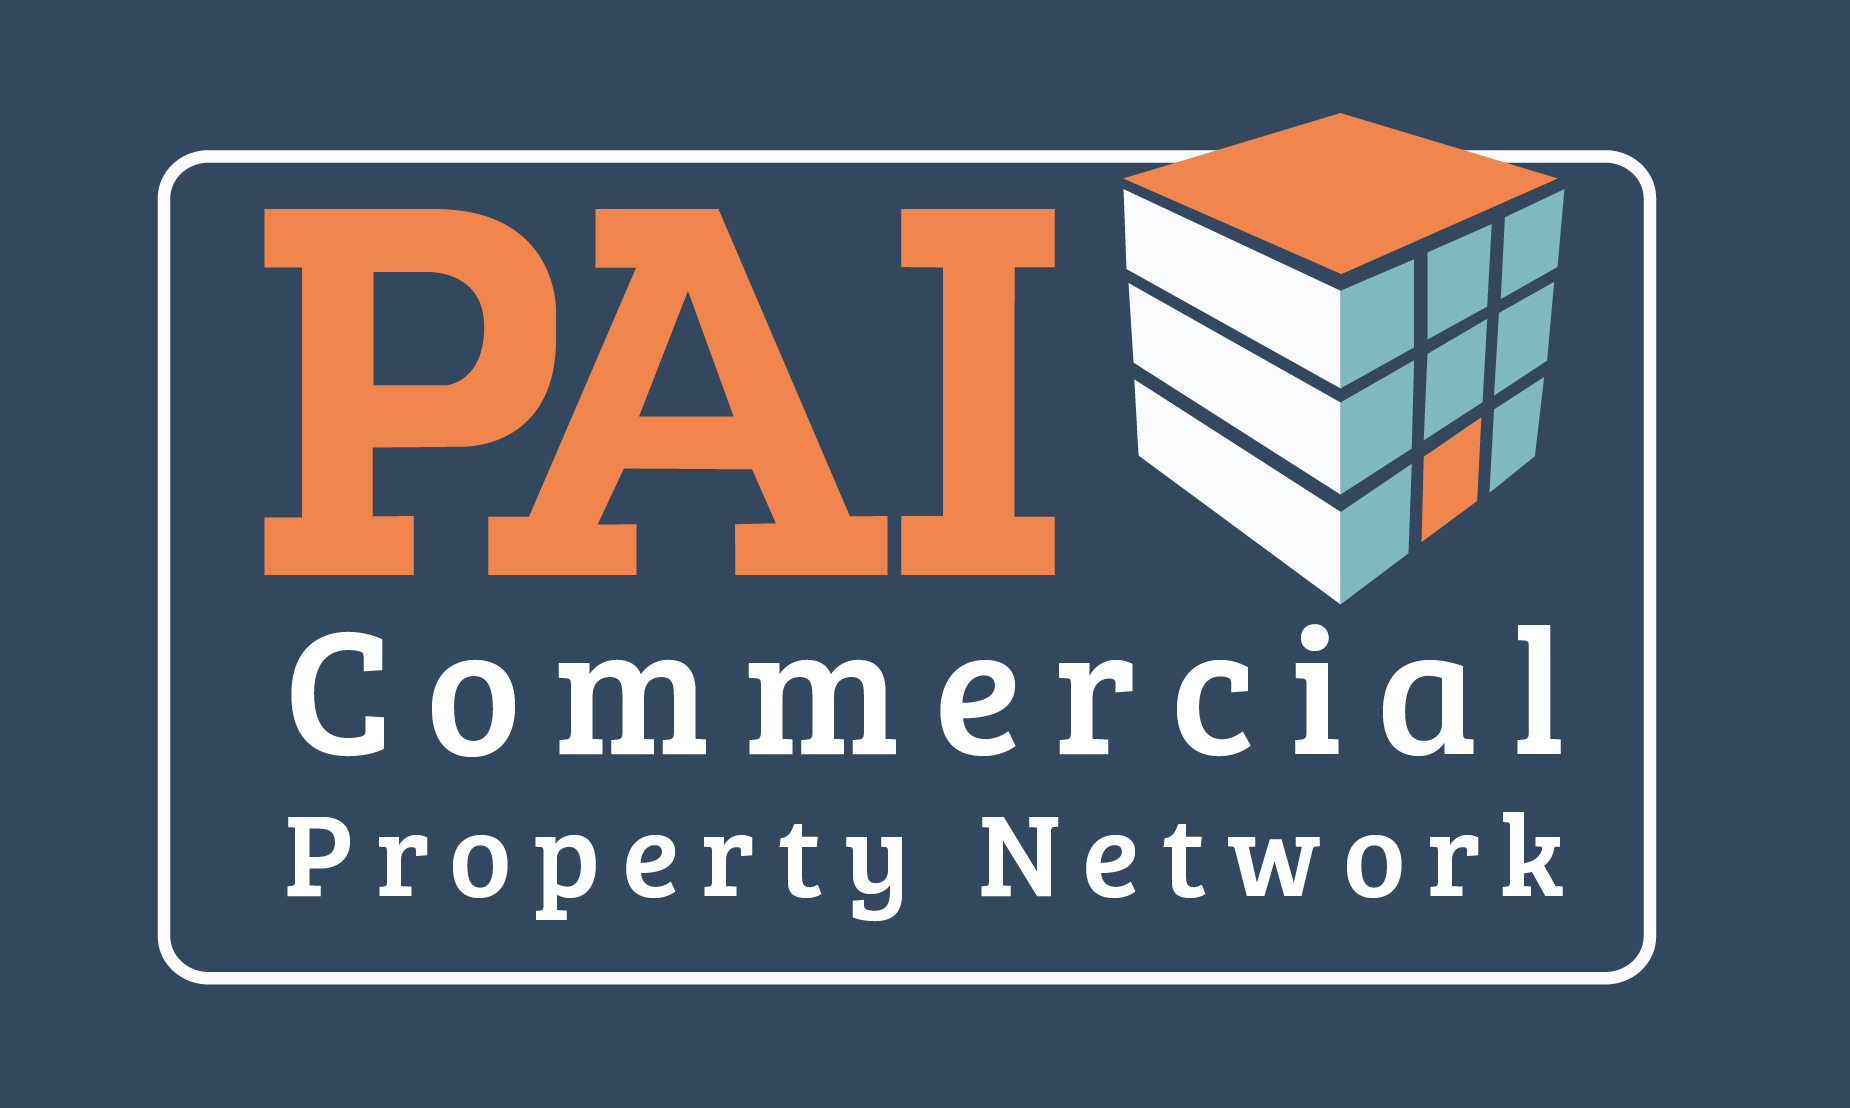 Award Winning Commercial Property Network